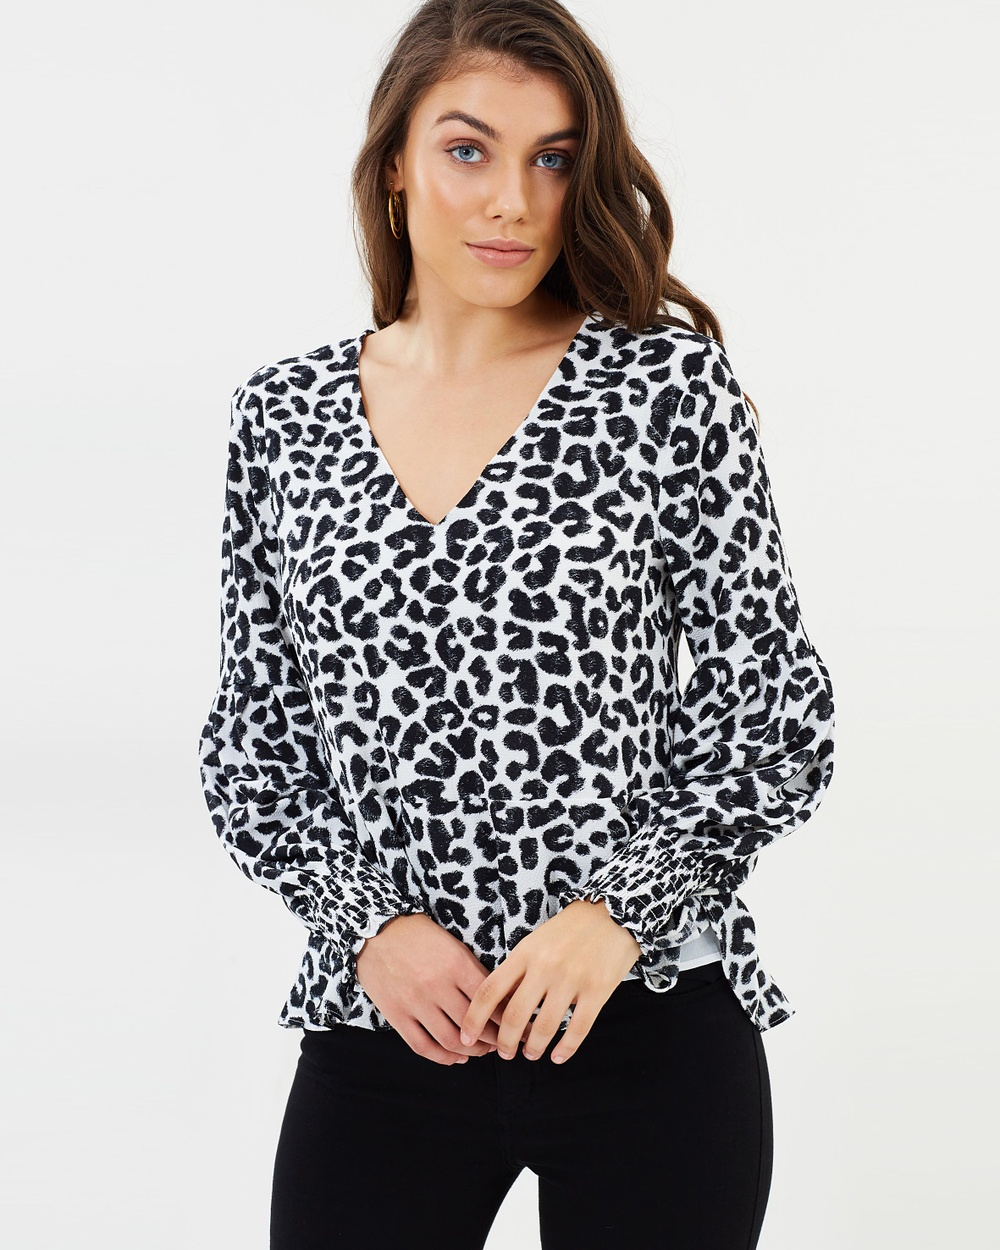 Atmos & Here ICONIC EXCLUSIVE Lois Shirred Sleeve Top Tops Leopard ICONIC EXCLUSIVE Lois Shirred Sleeve Top